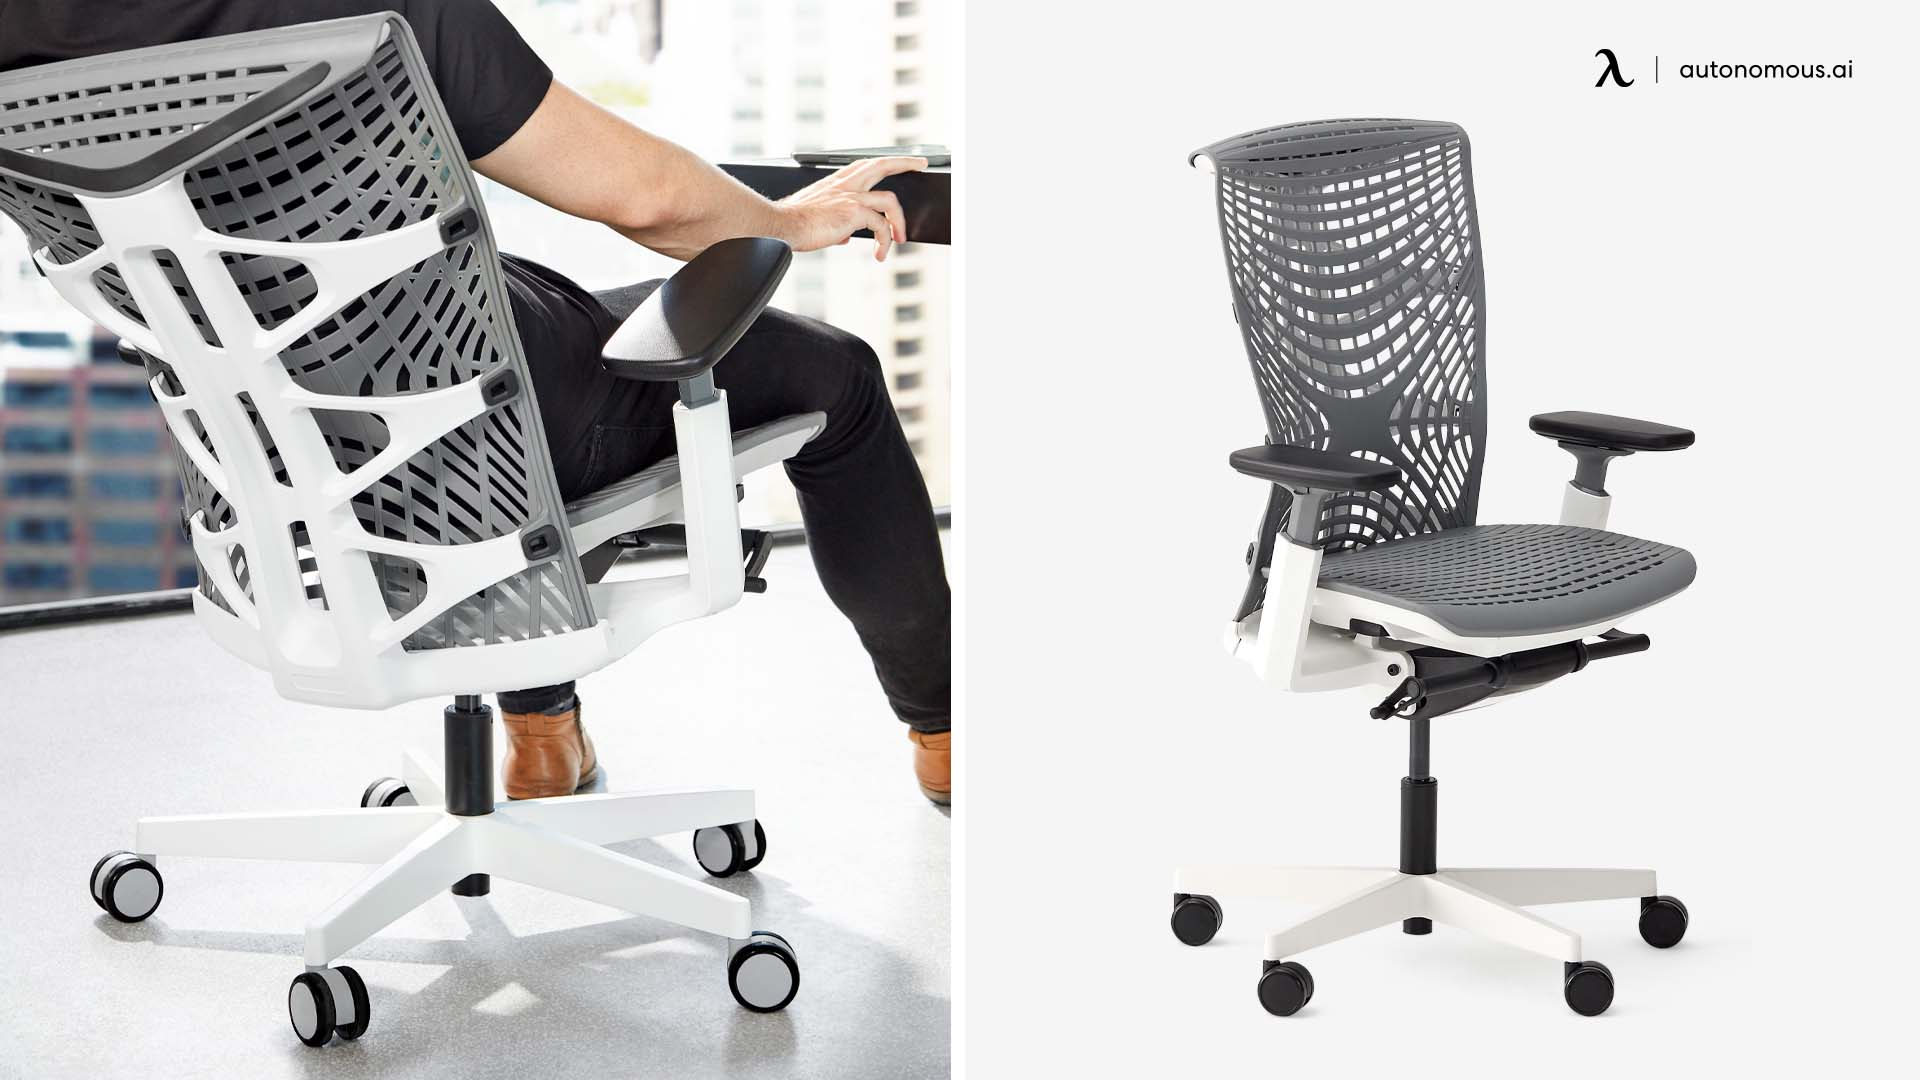 Office Chairs - Autonomous Black Friday Chairs